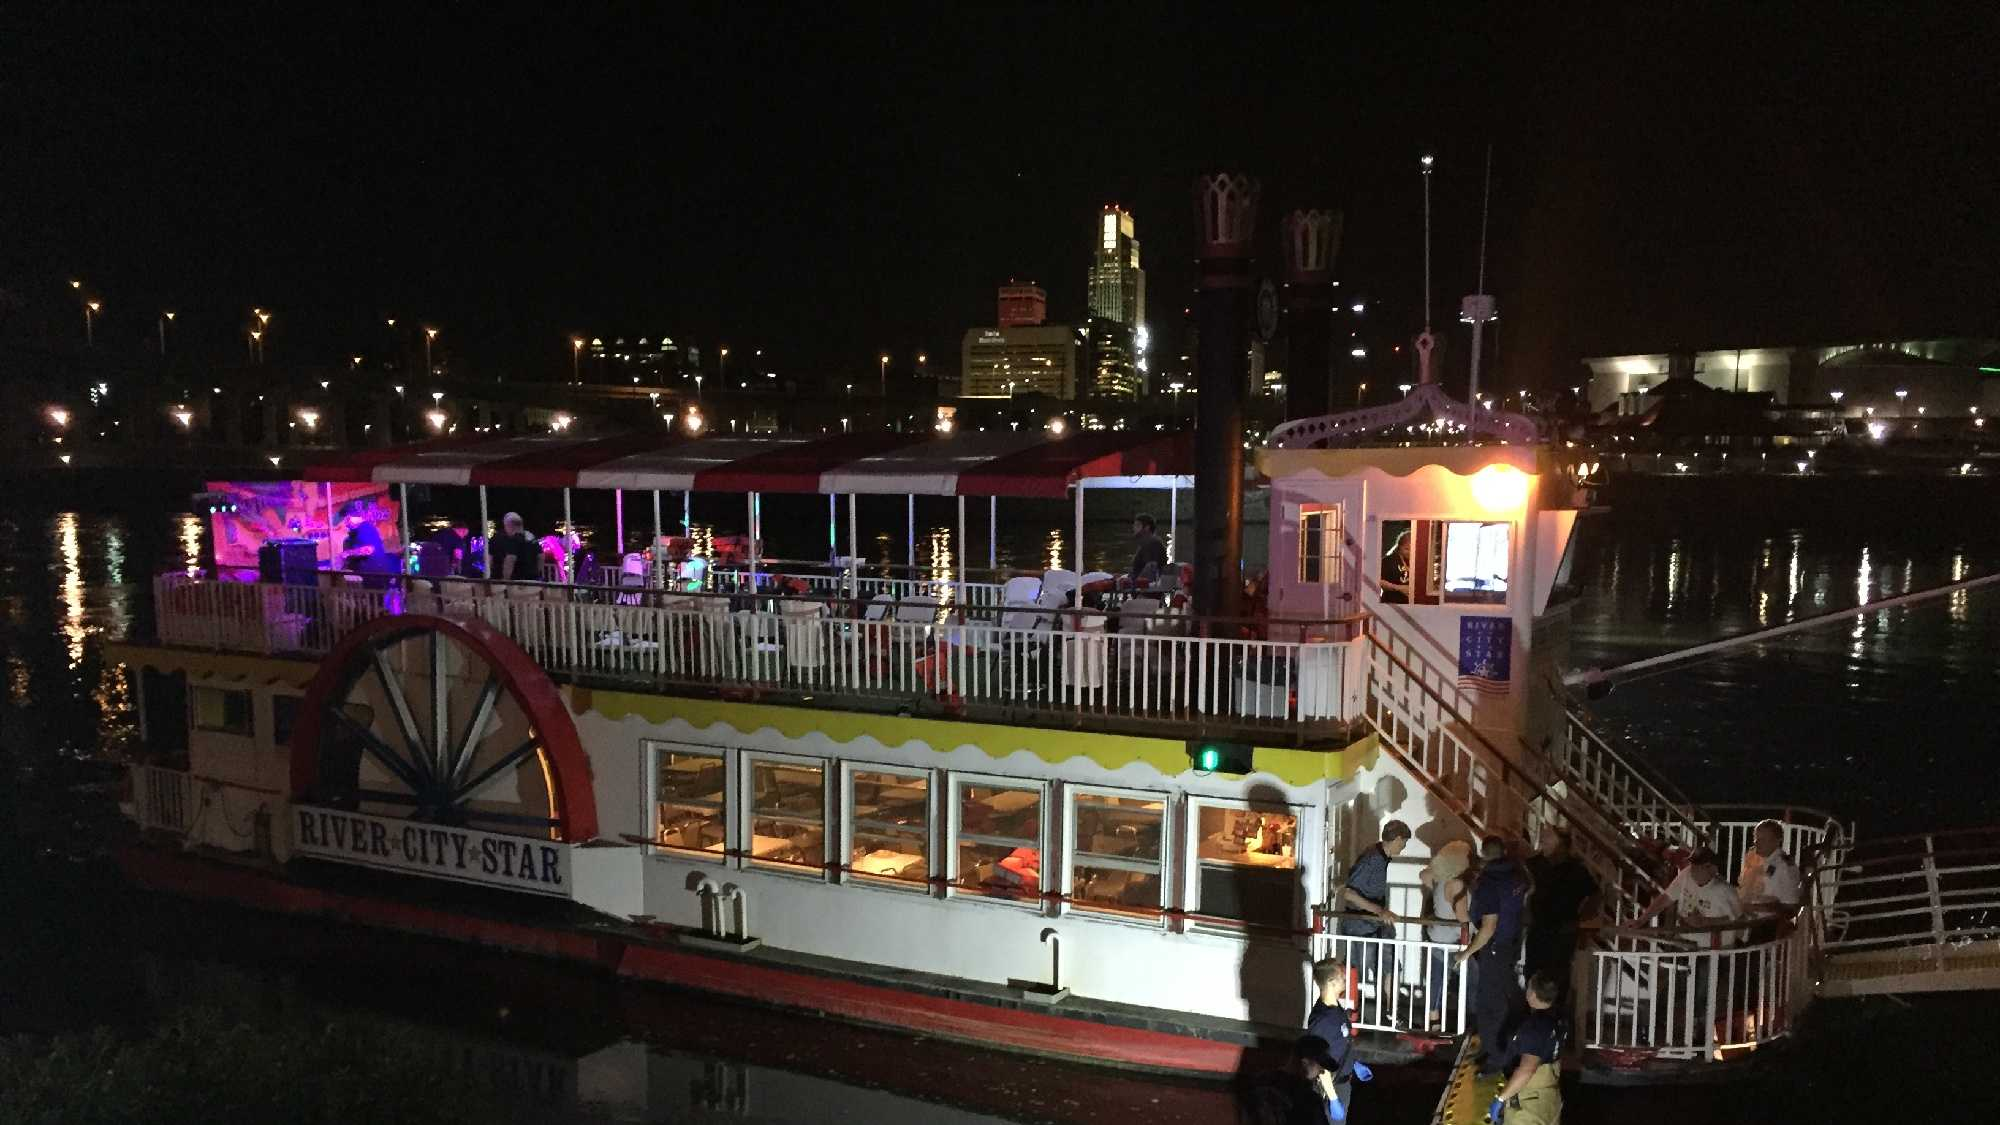 An emergency evacuation is underway on the River City Star after an incident on the Missouri River Friday night.